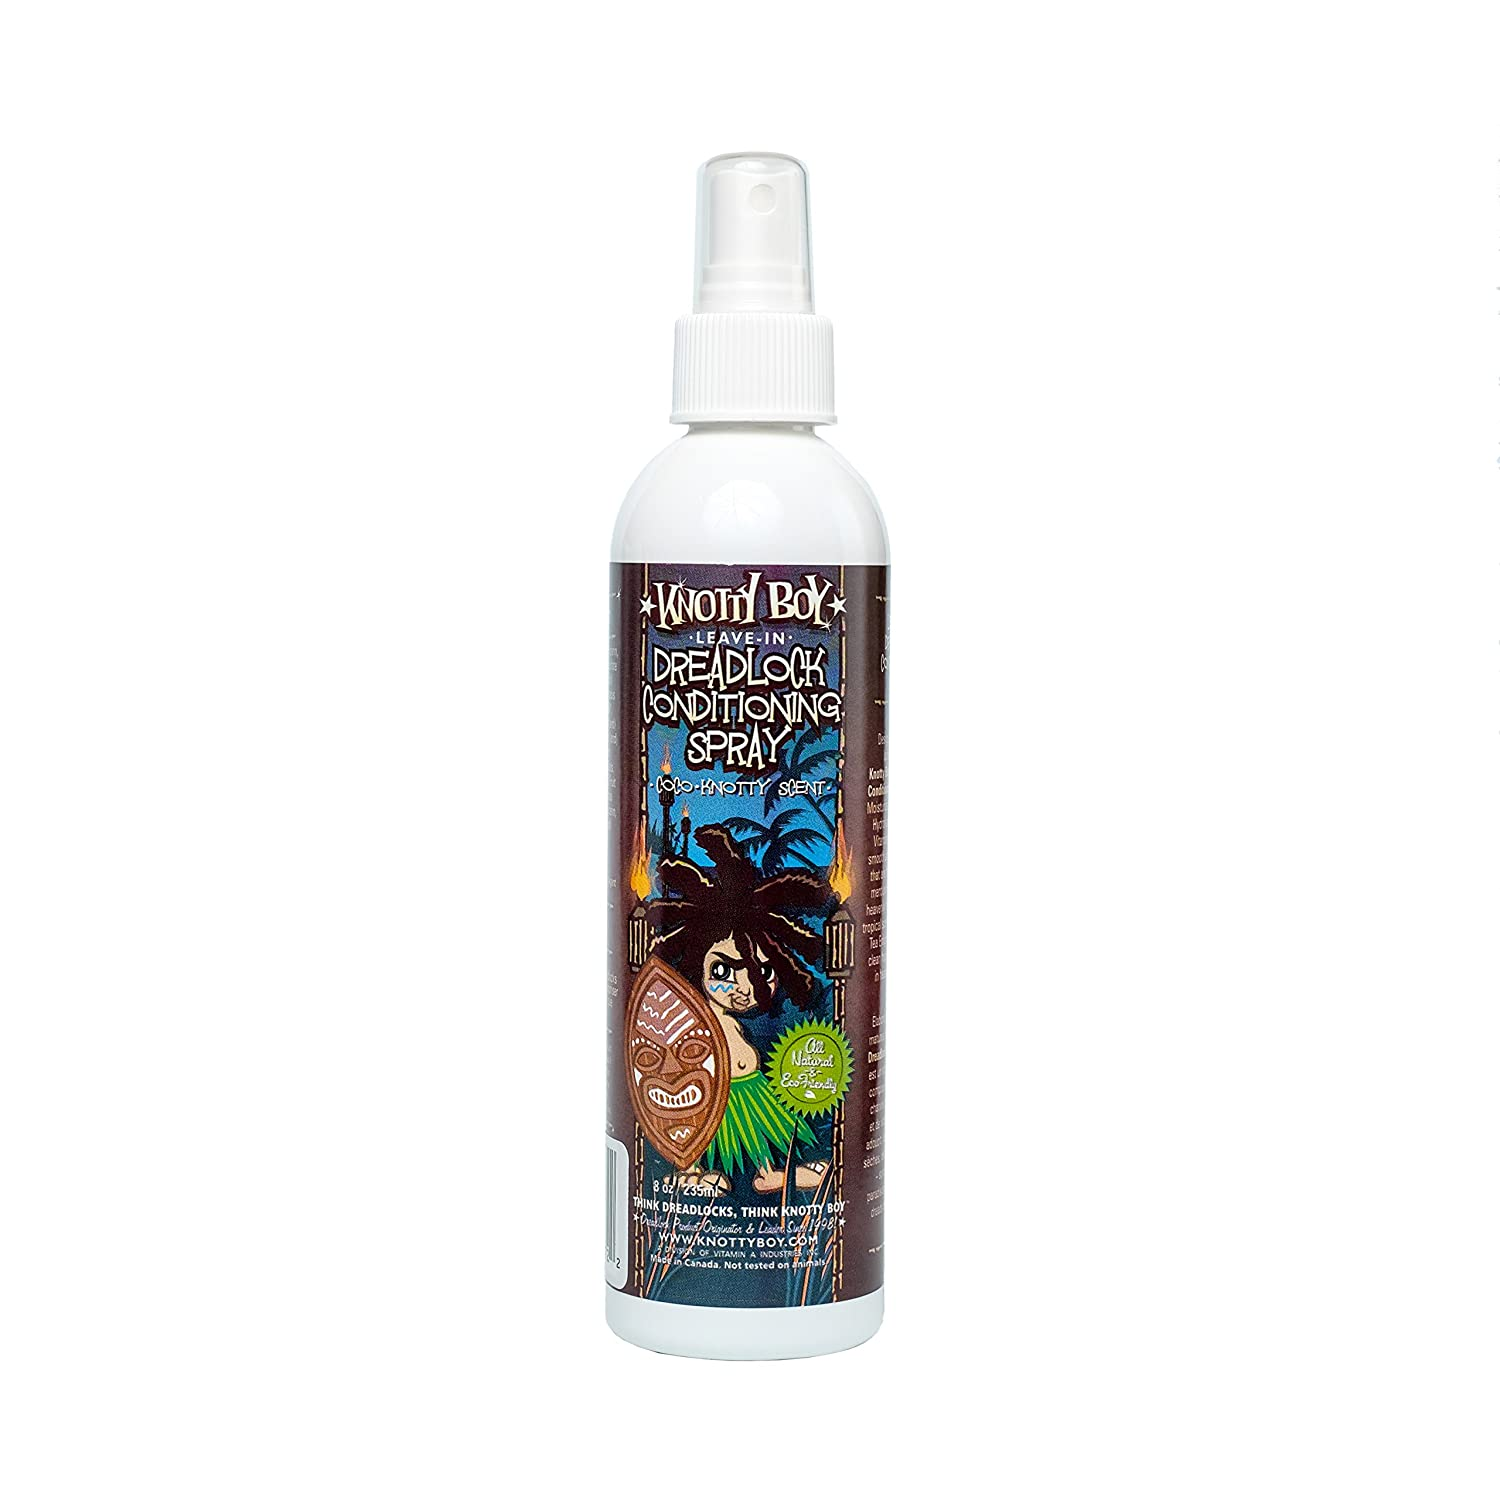 Knotty Boy Dreadlock Conditioning Spray Coco-Knotty